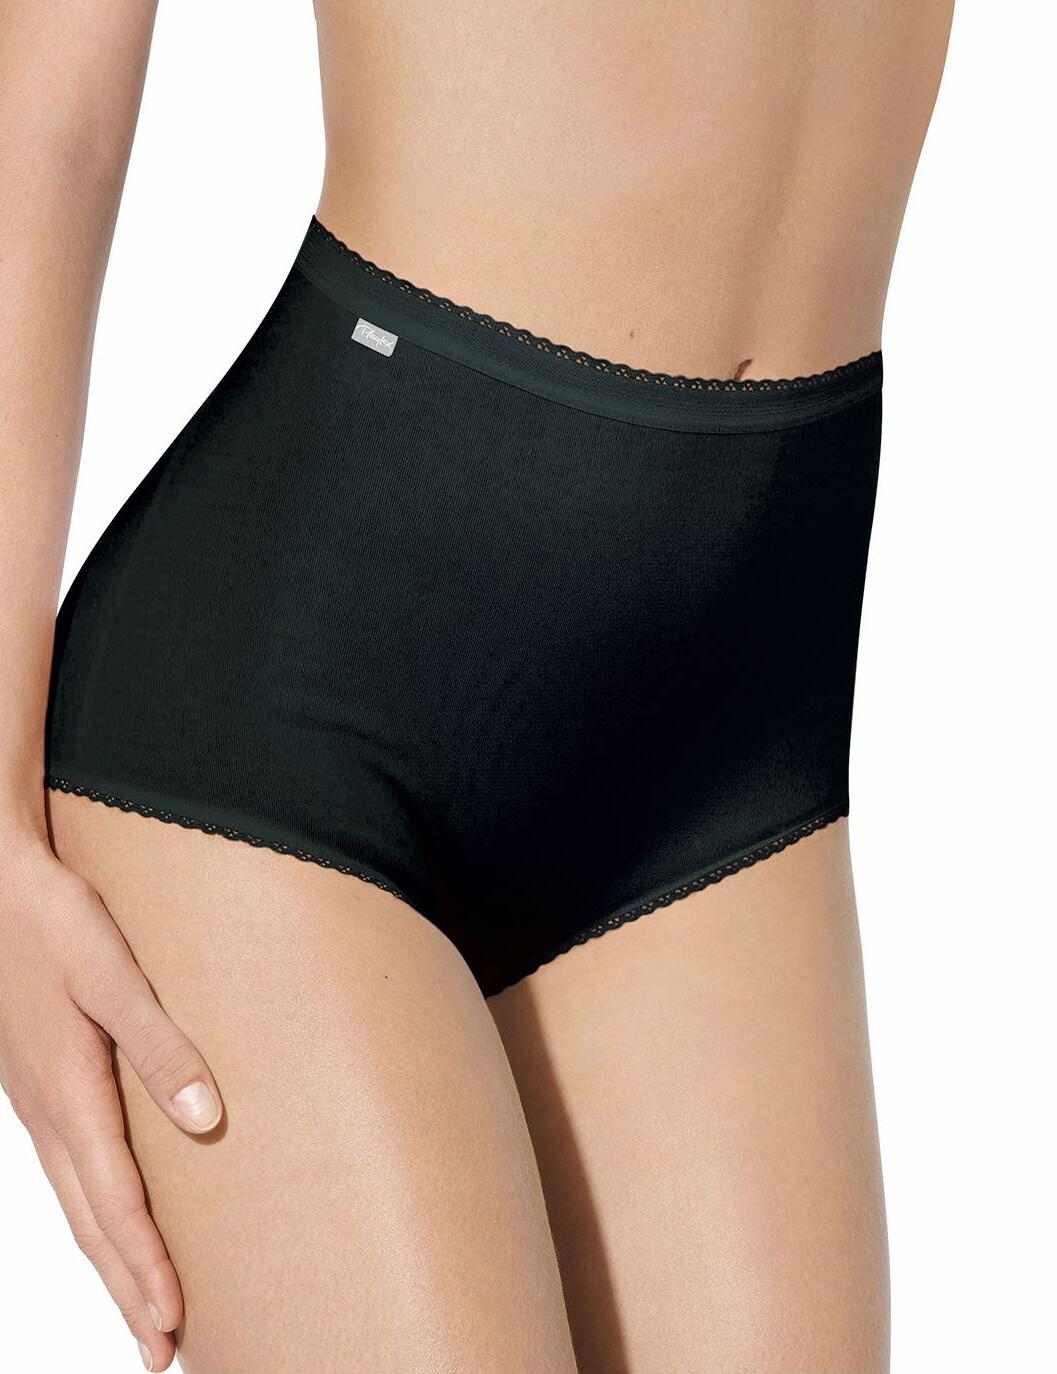 Playtex Pure Cotton : Maxi Brief, 3 Pack P00BQ - Black